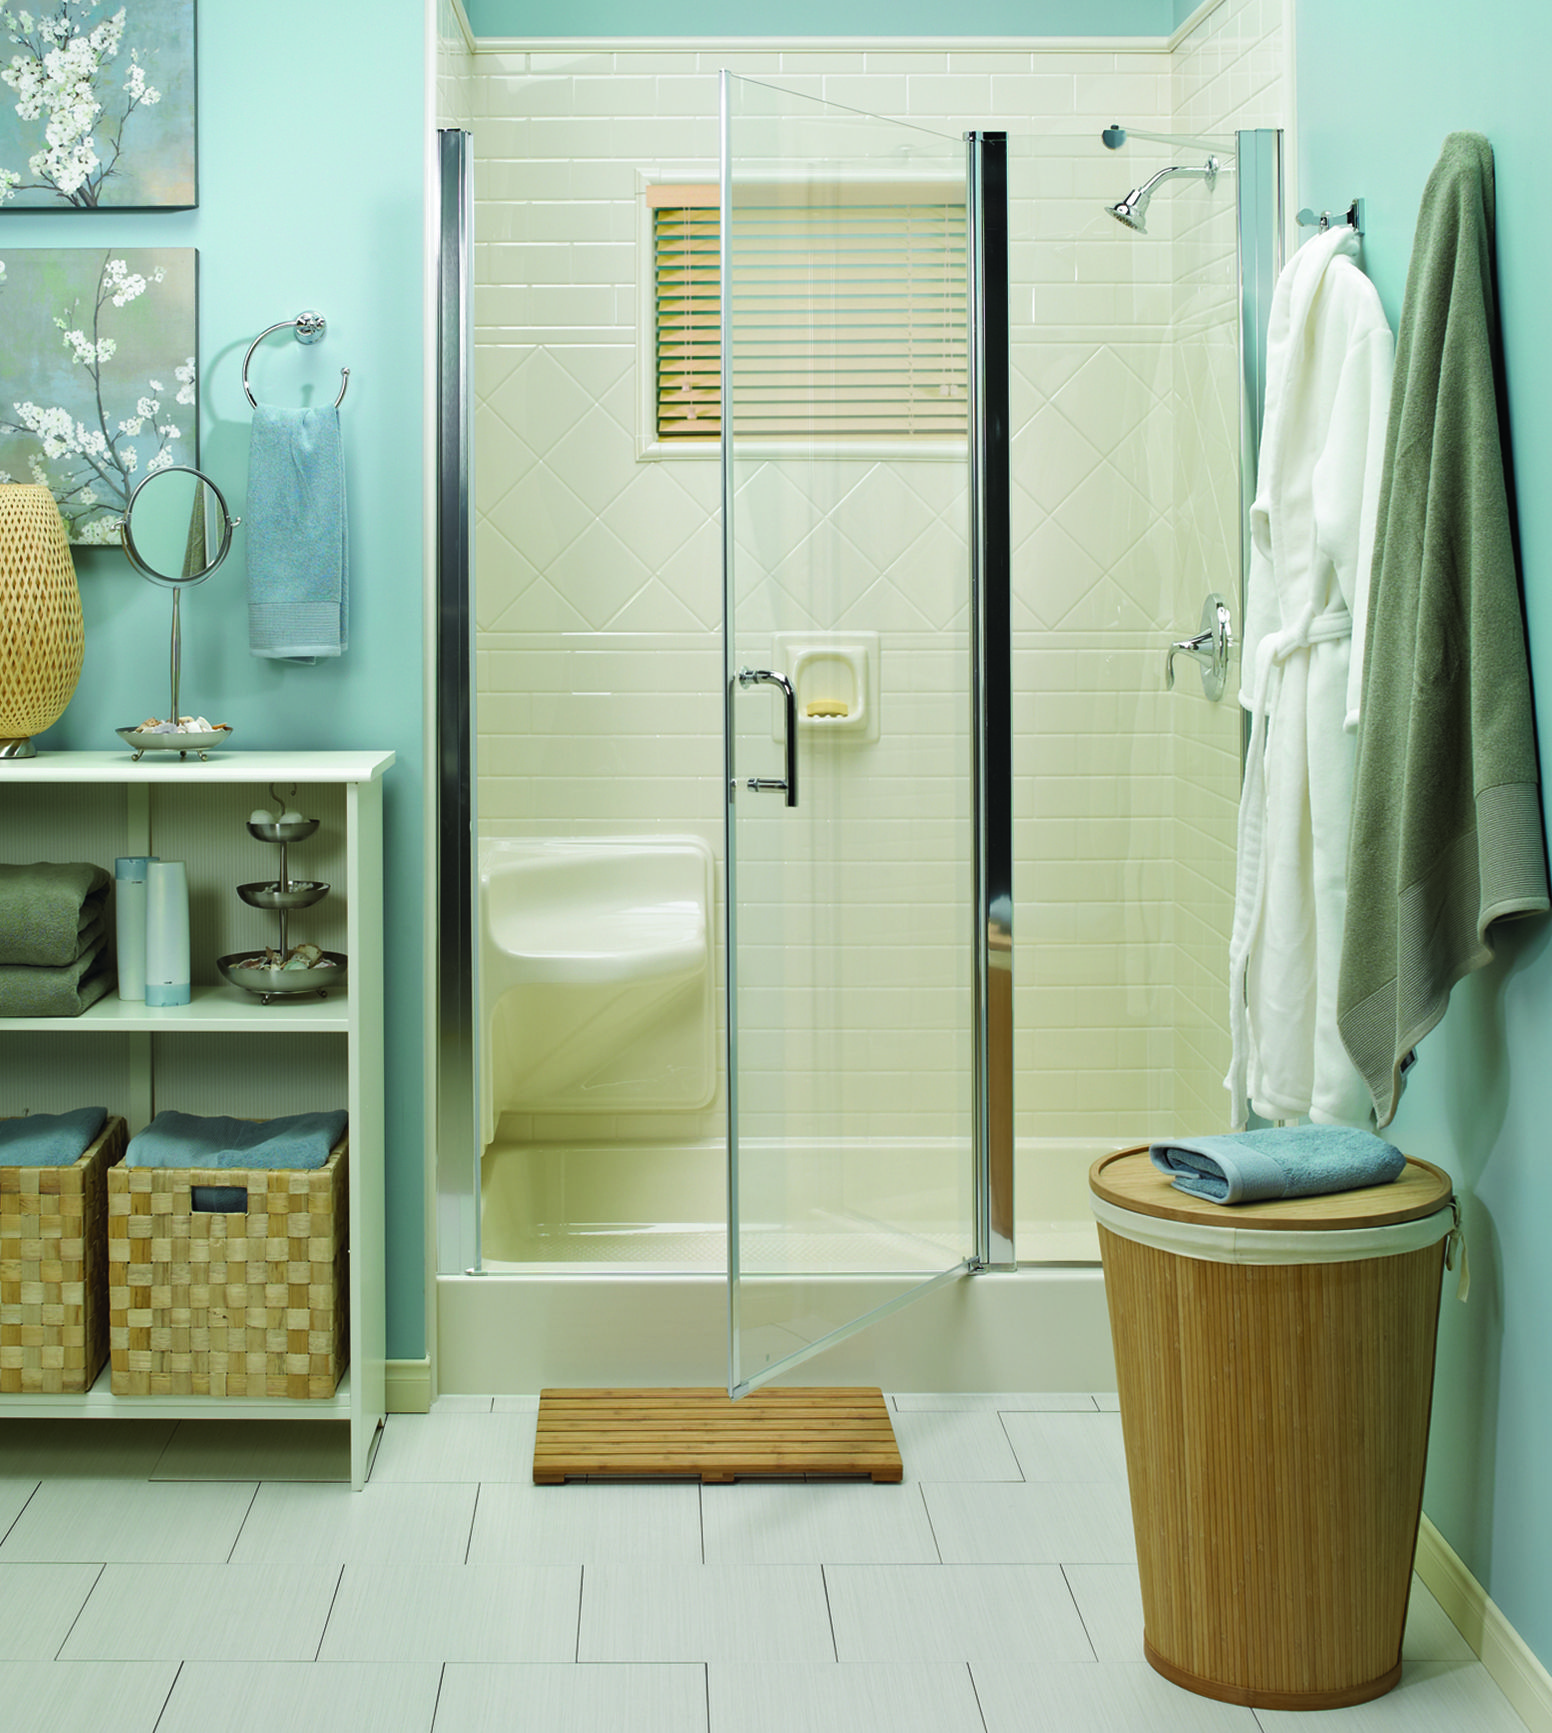 A Bath Fitter Shower Glass Door Can Give Your Bathroom Such A Clean Look.